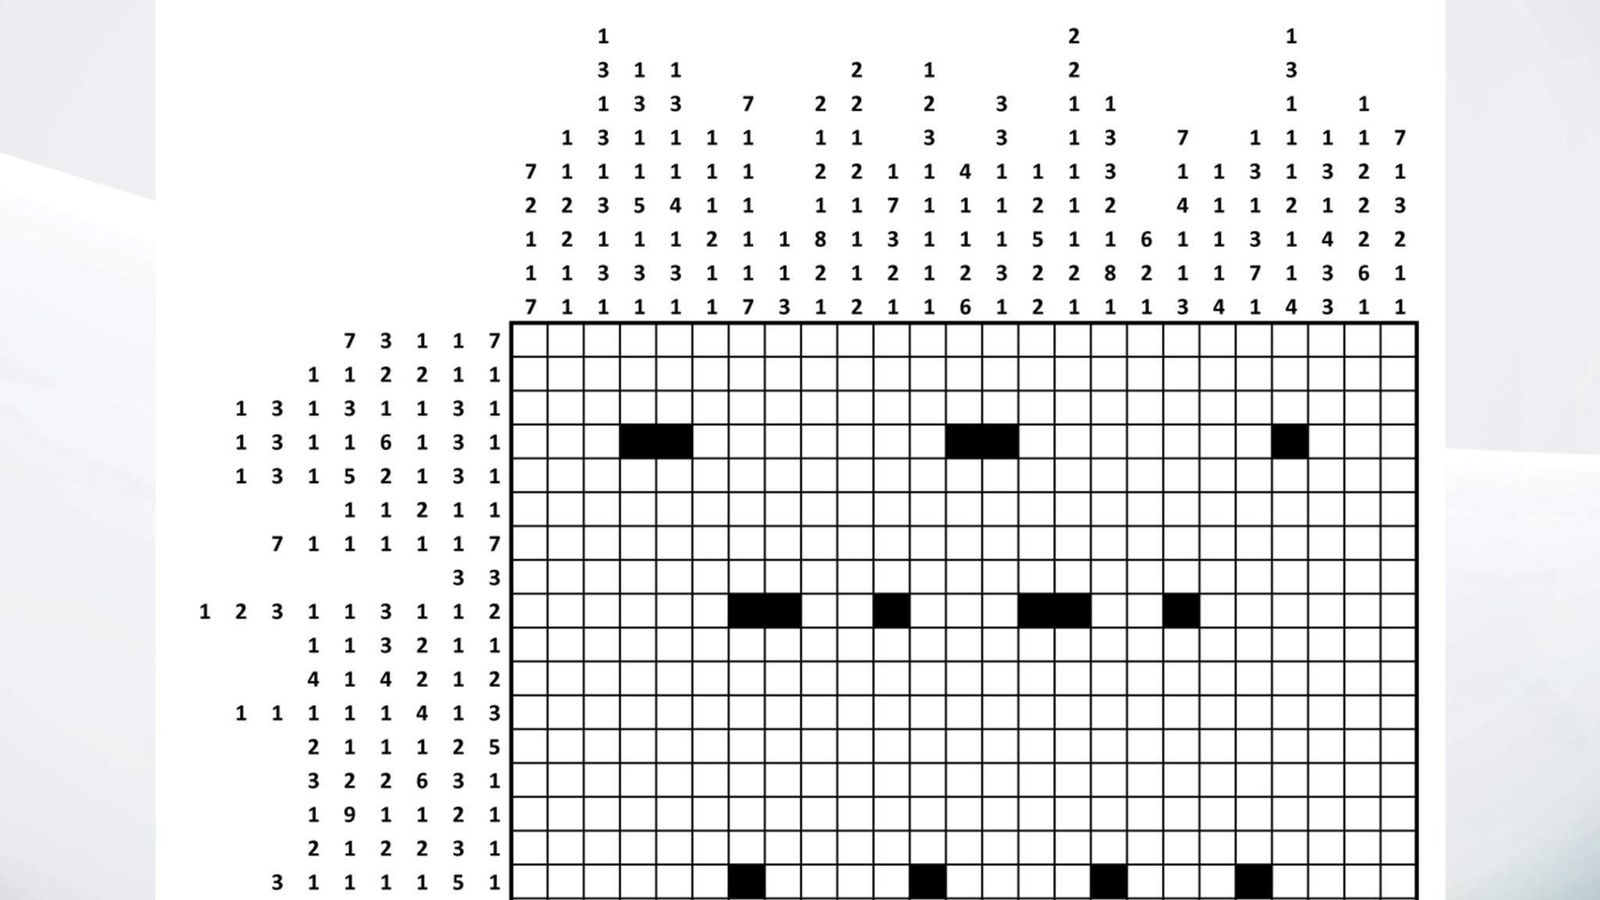 Answers To GCHQ Christmas Puzzle Revealed